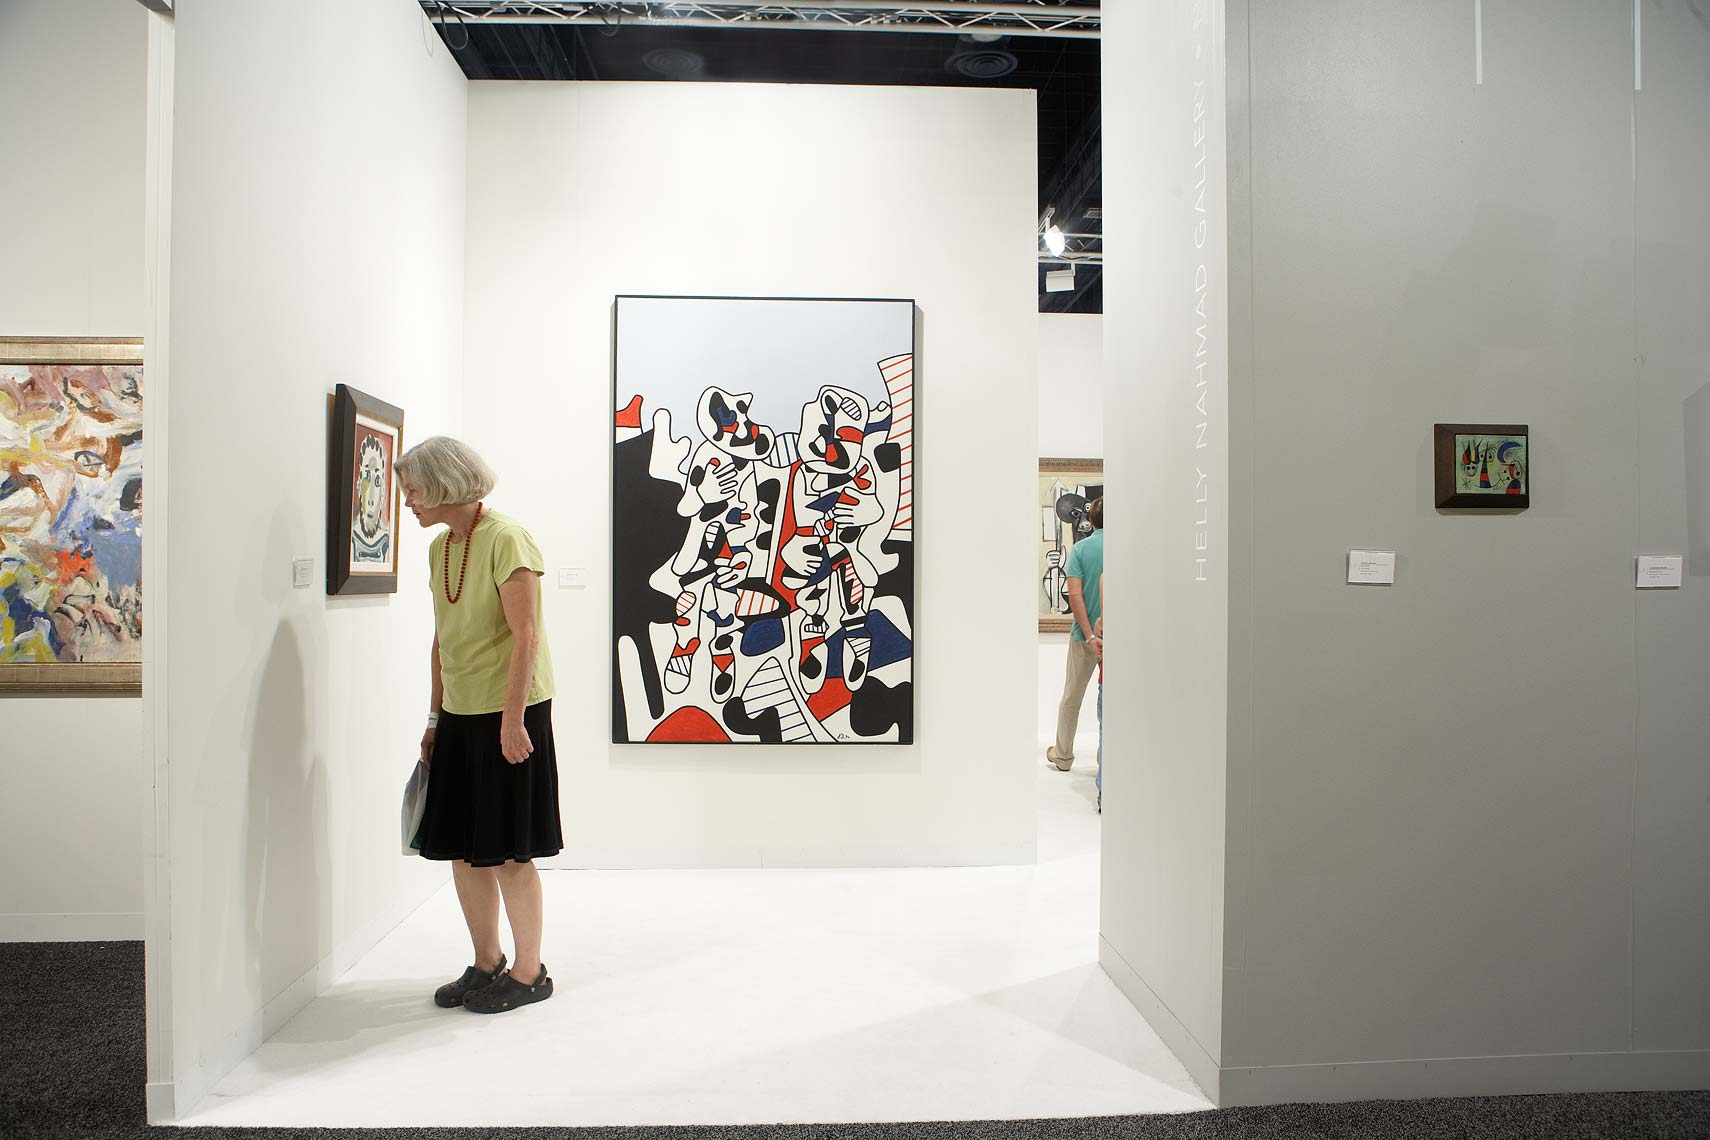 Michael_Warren_Art_Basel_04.JPG